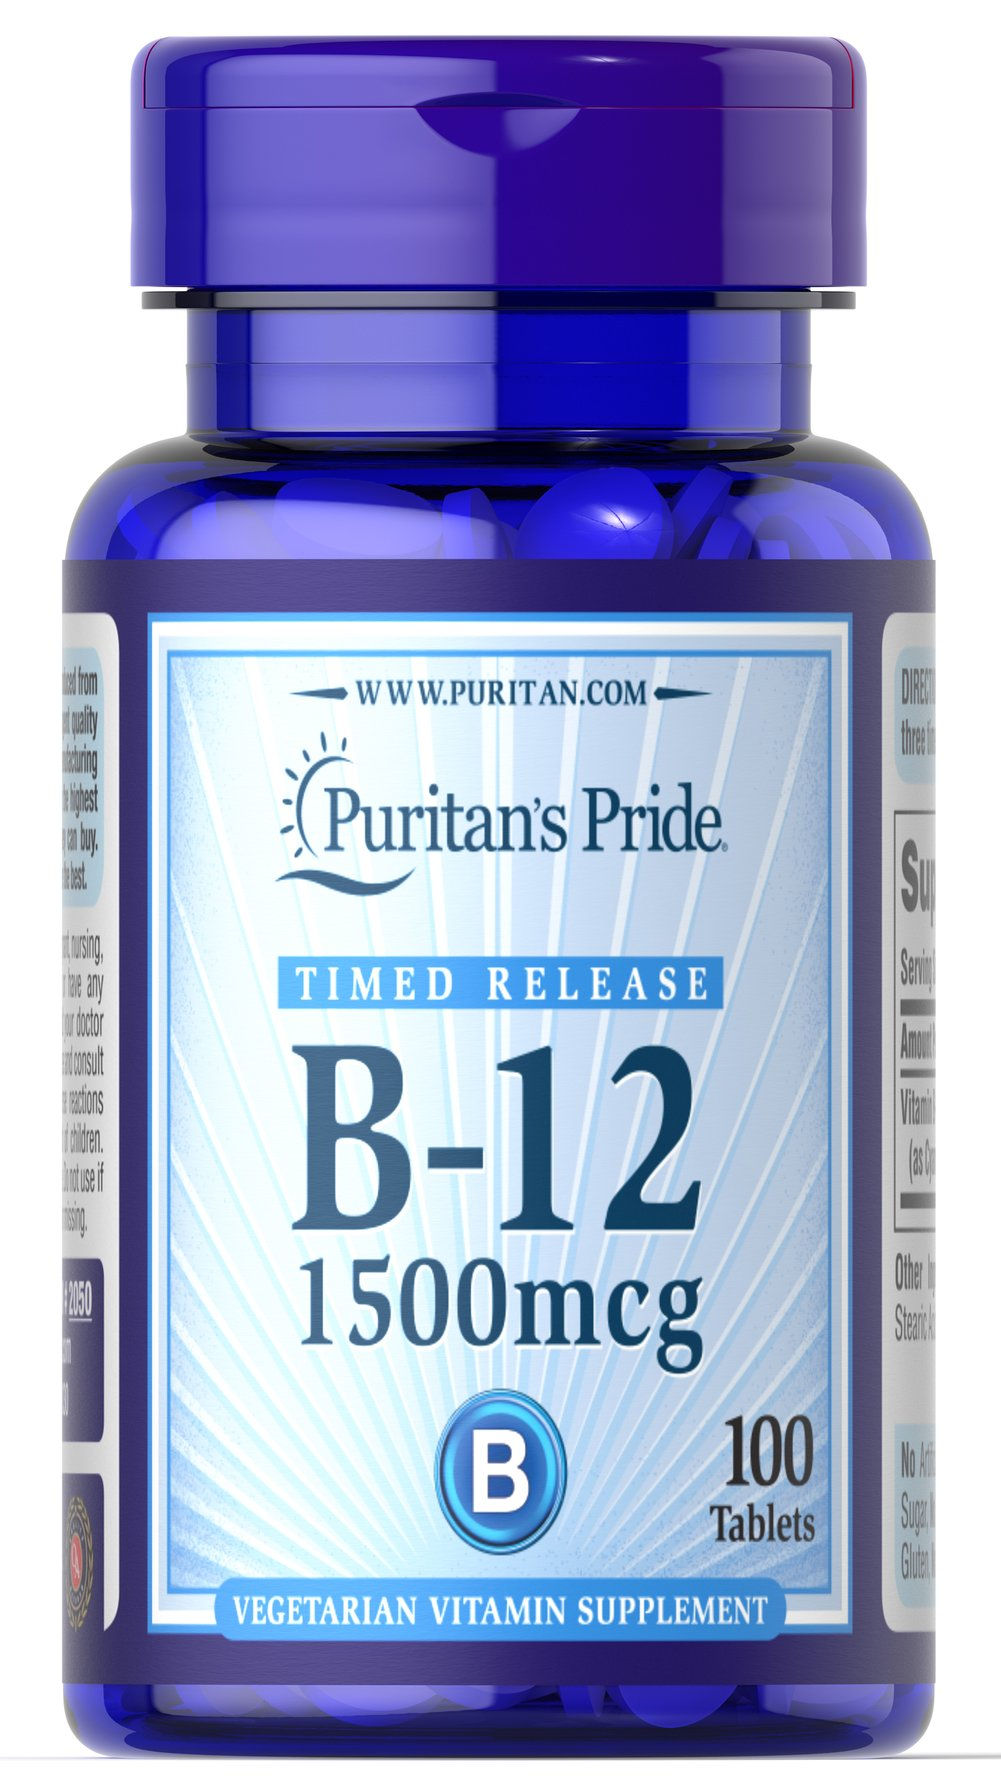 Vitamin B-12 1500 mcg Timed Release Thumbnail Alternate Bottle View